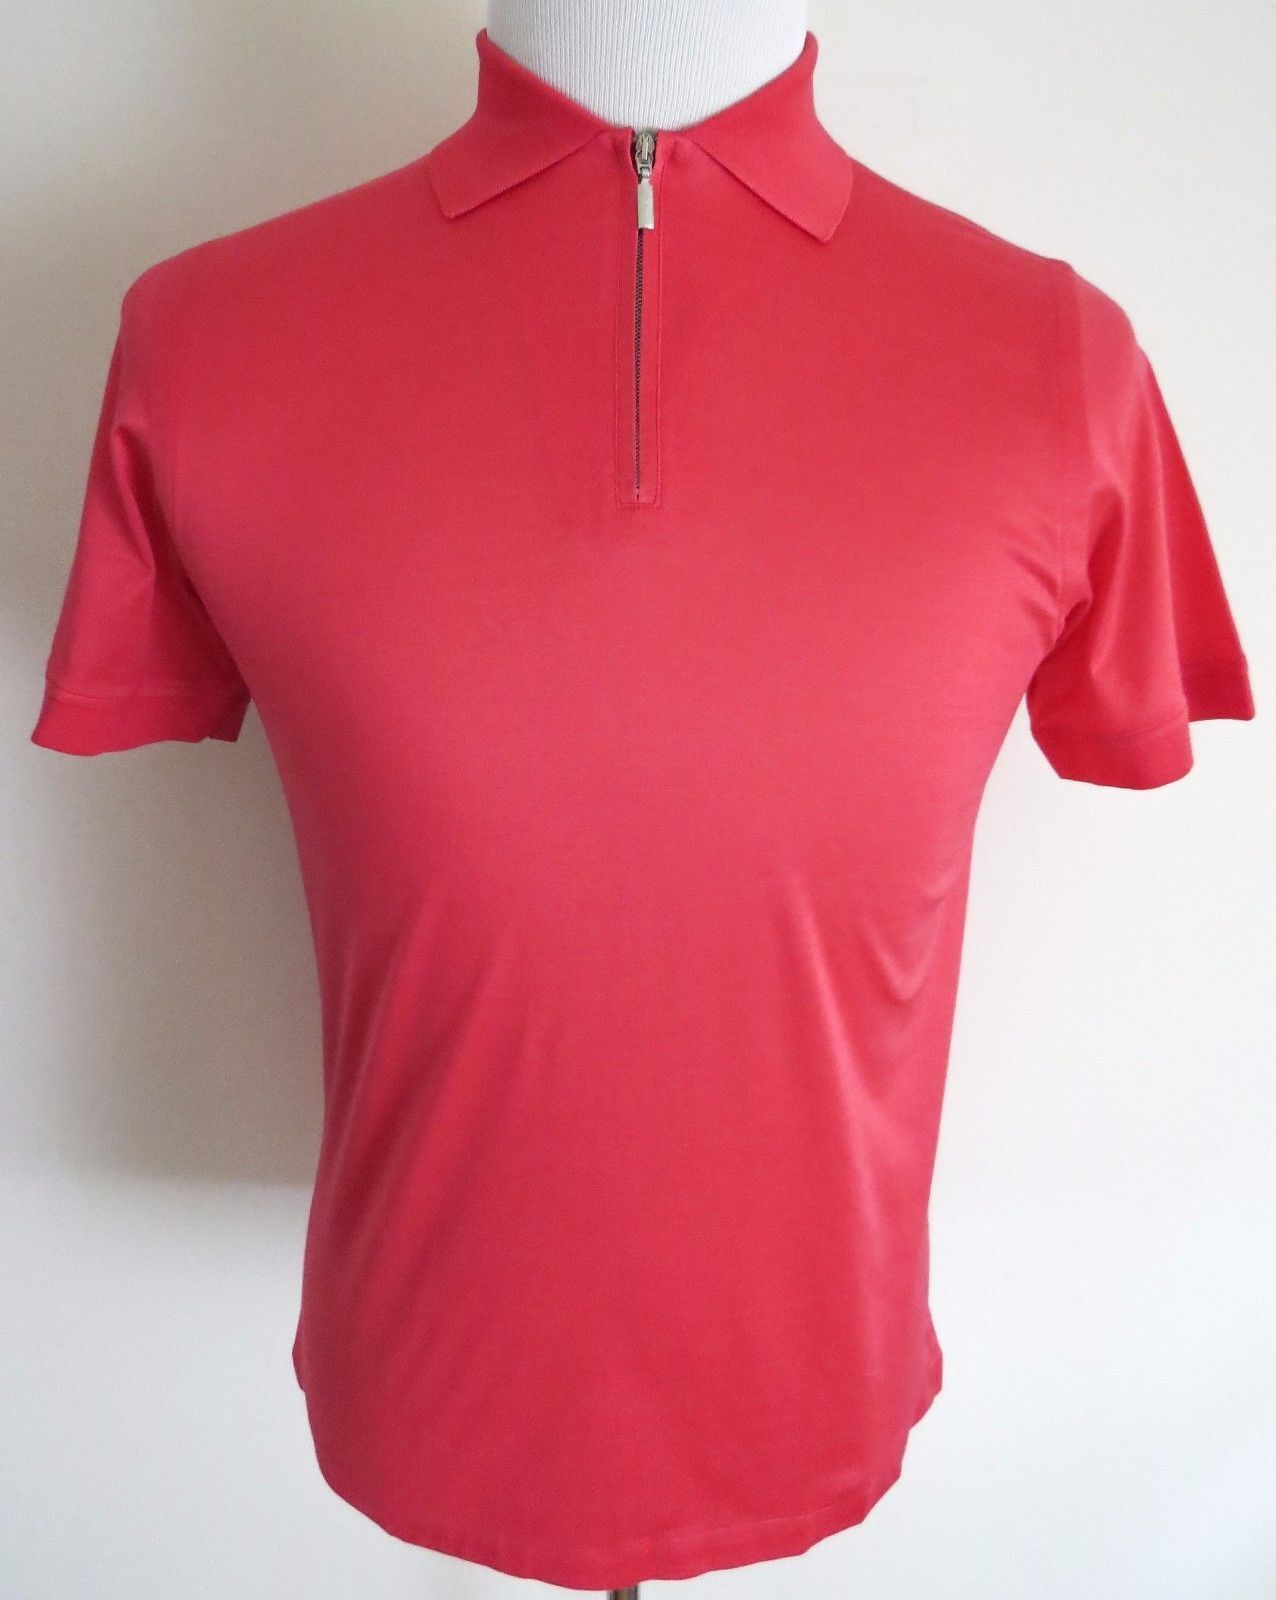 595 BRIONI Slim Fit Brushed Cotton Coral Farbe 1/2 Zip T-Shirt Shirt Größe Small